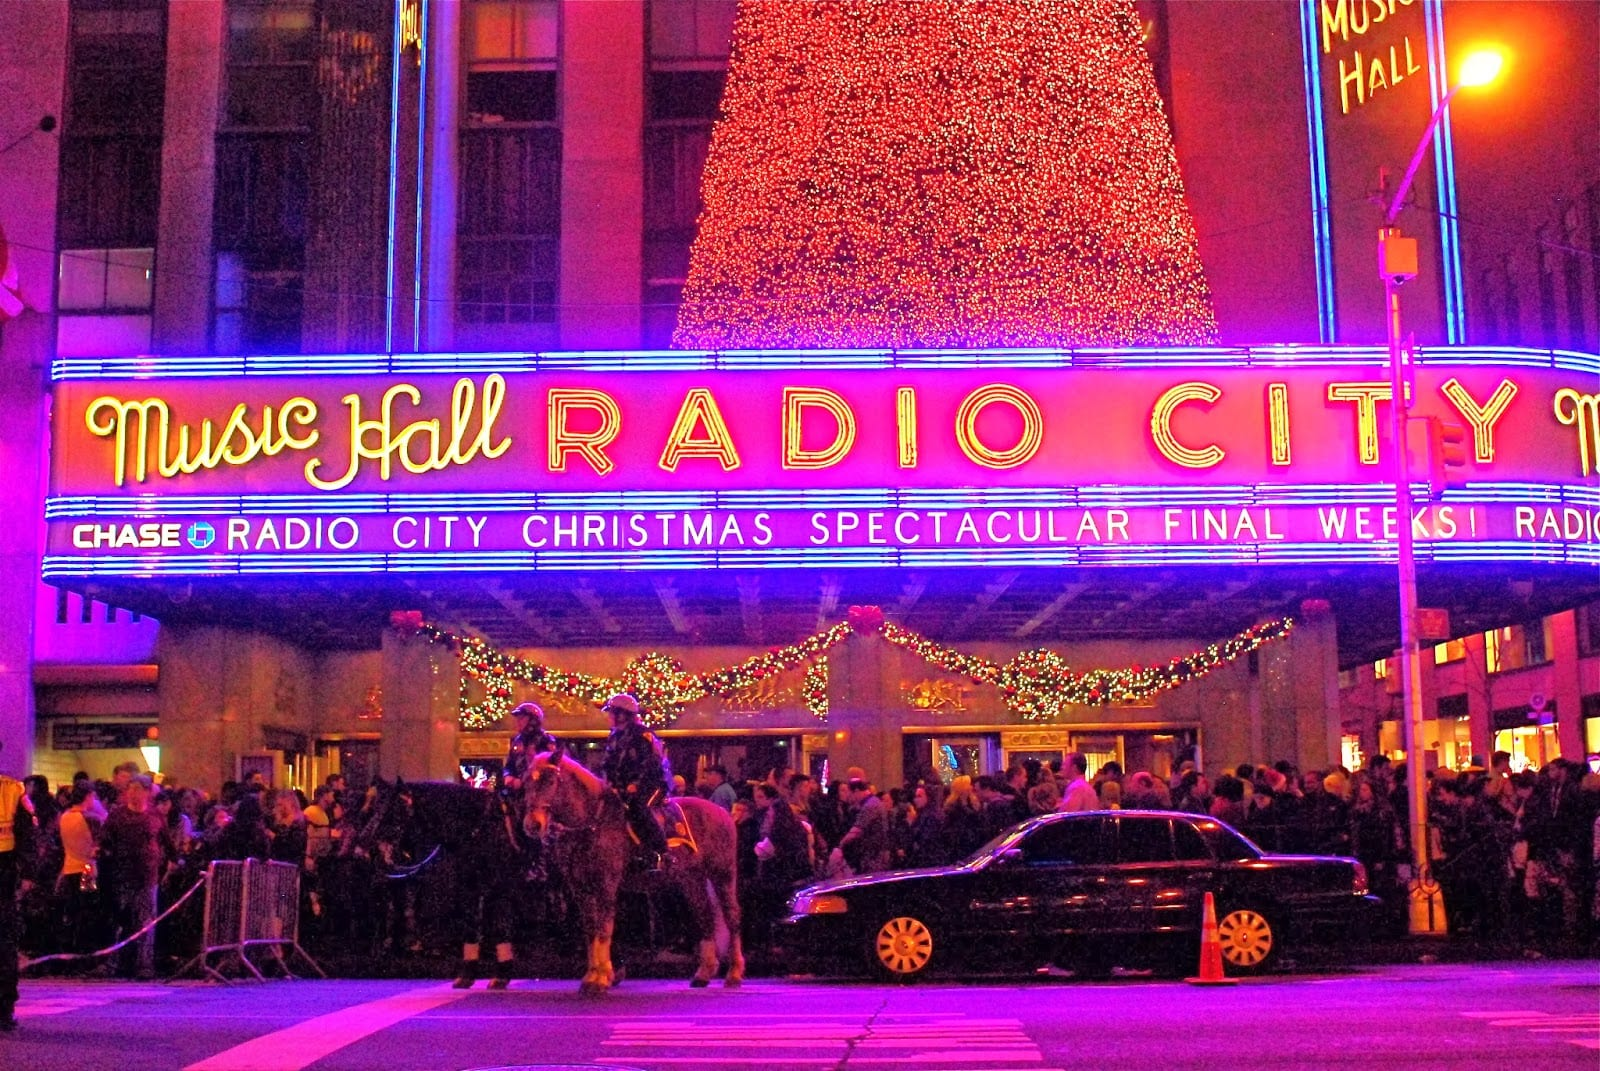 radio city christmas light spectacular show metro limousine service - How Long Is The Radio City Christmas Show